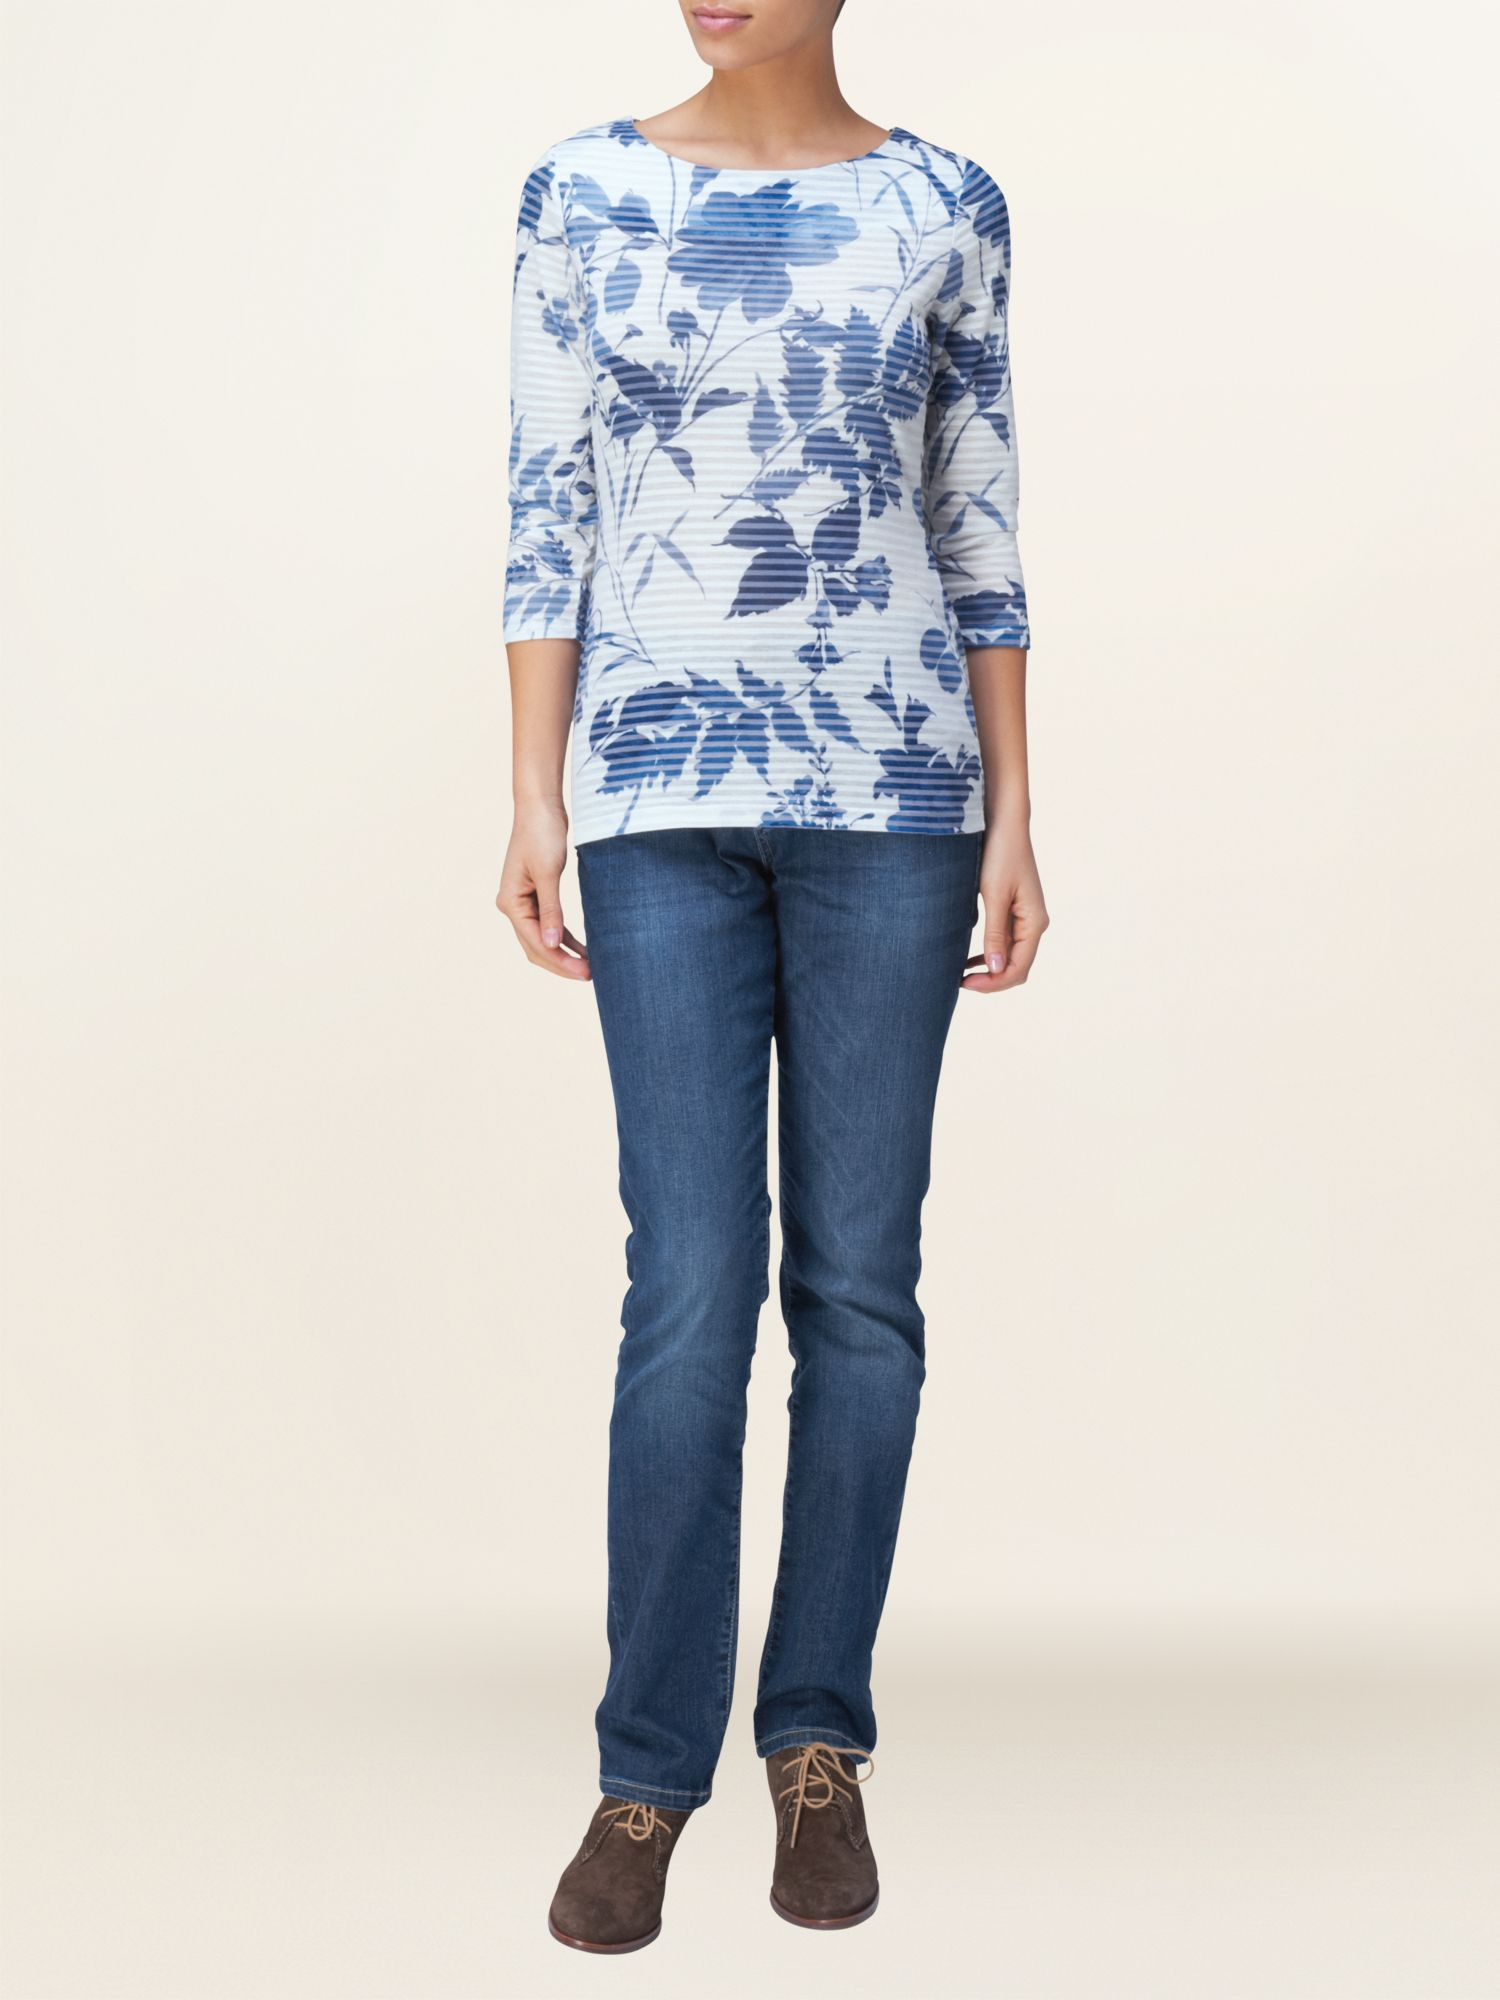 Shadow stripe floral top